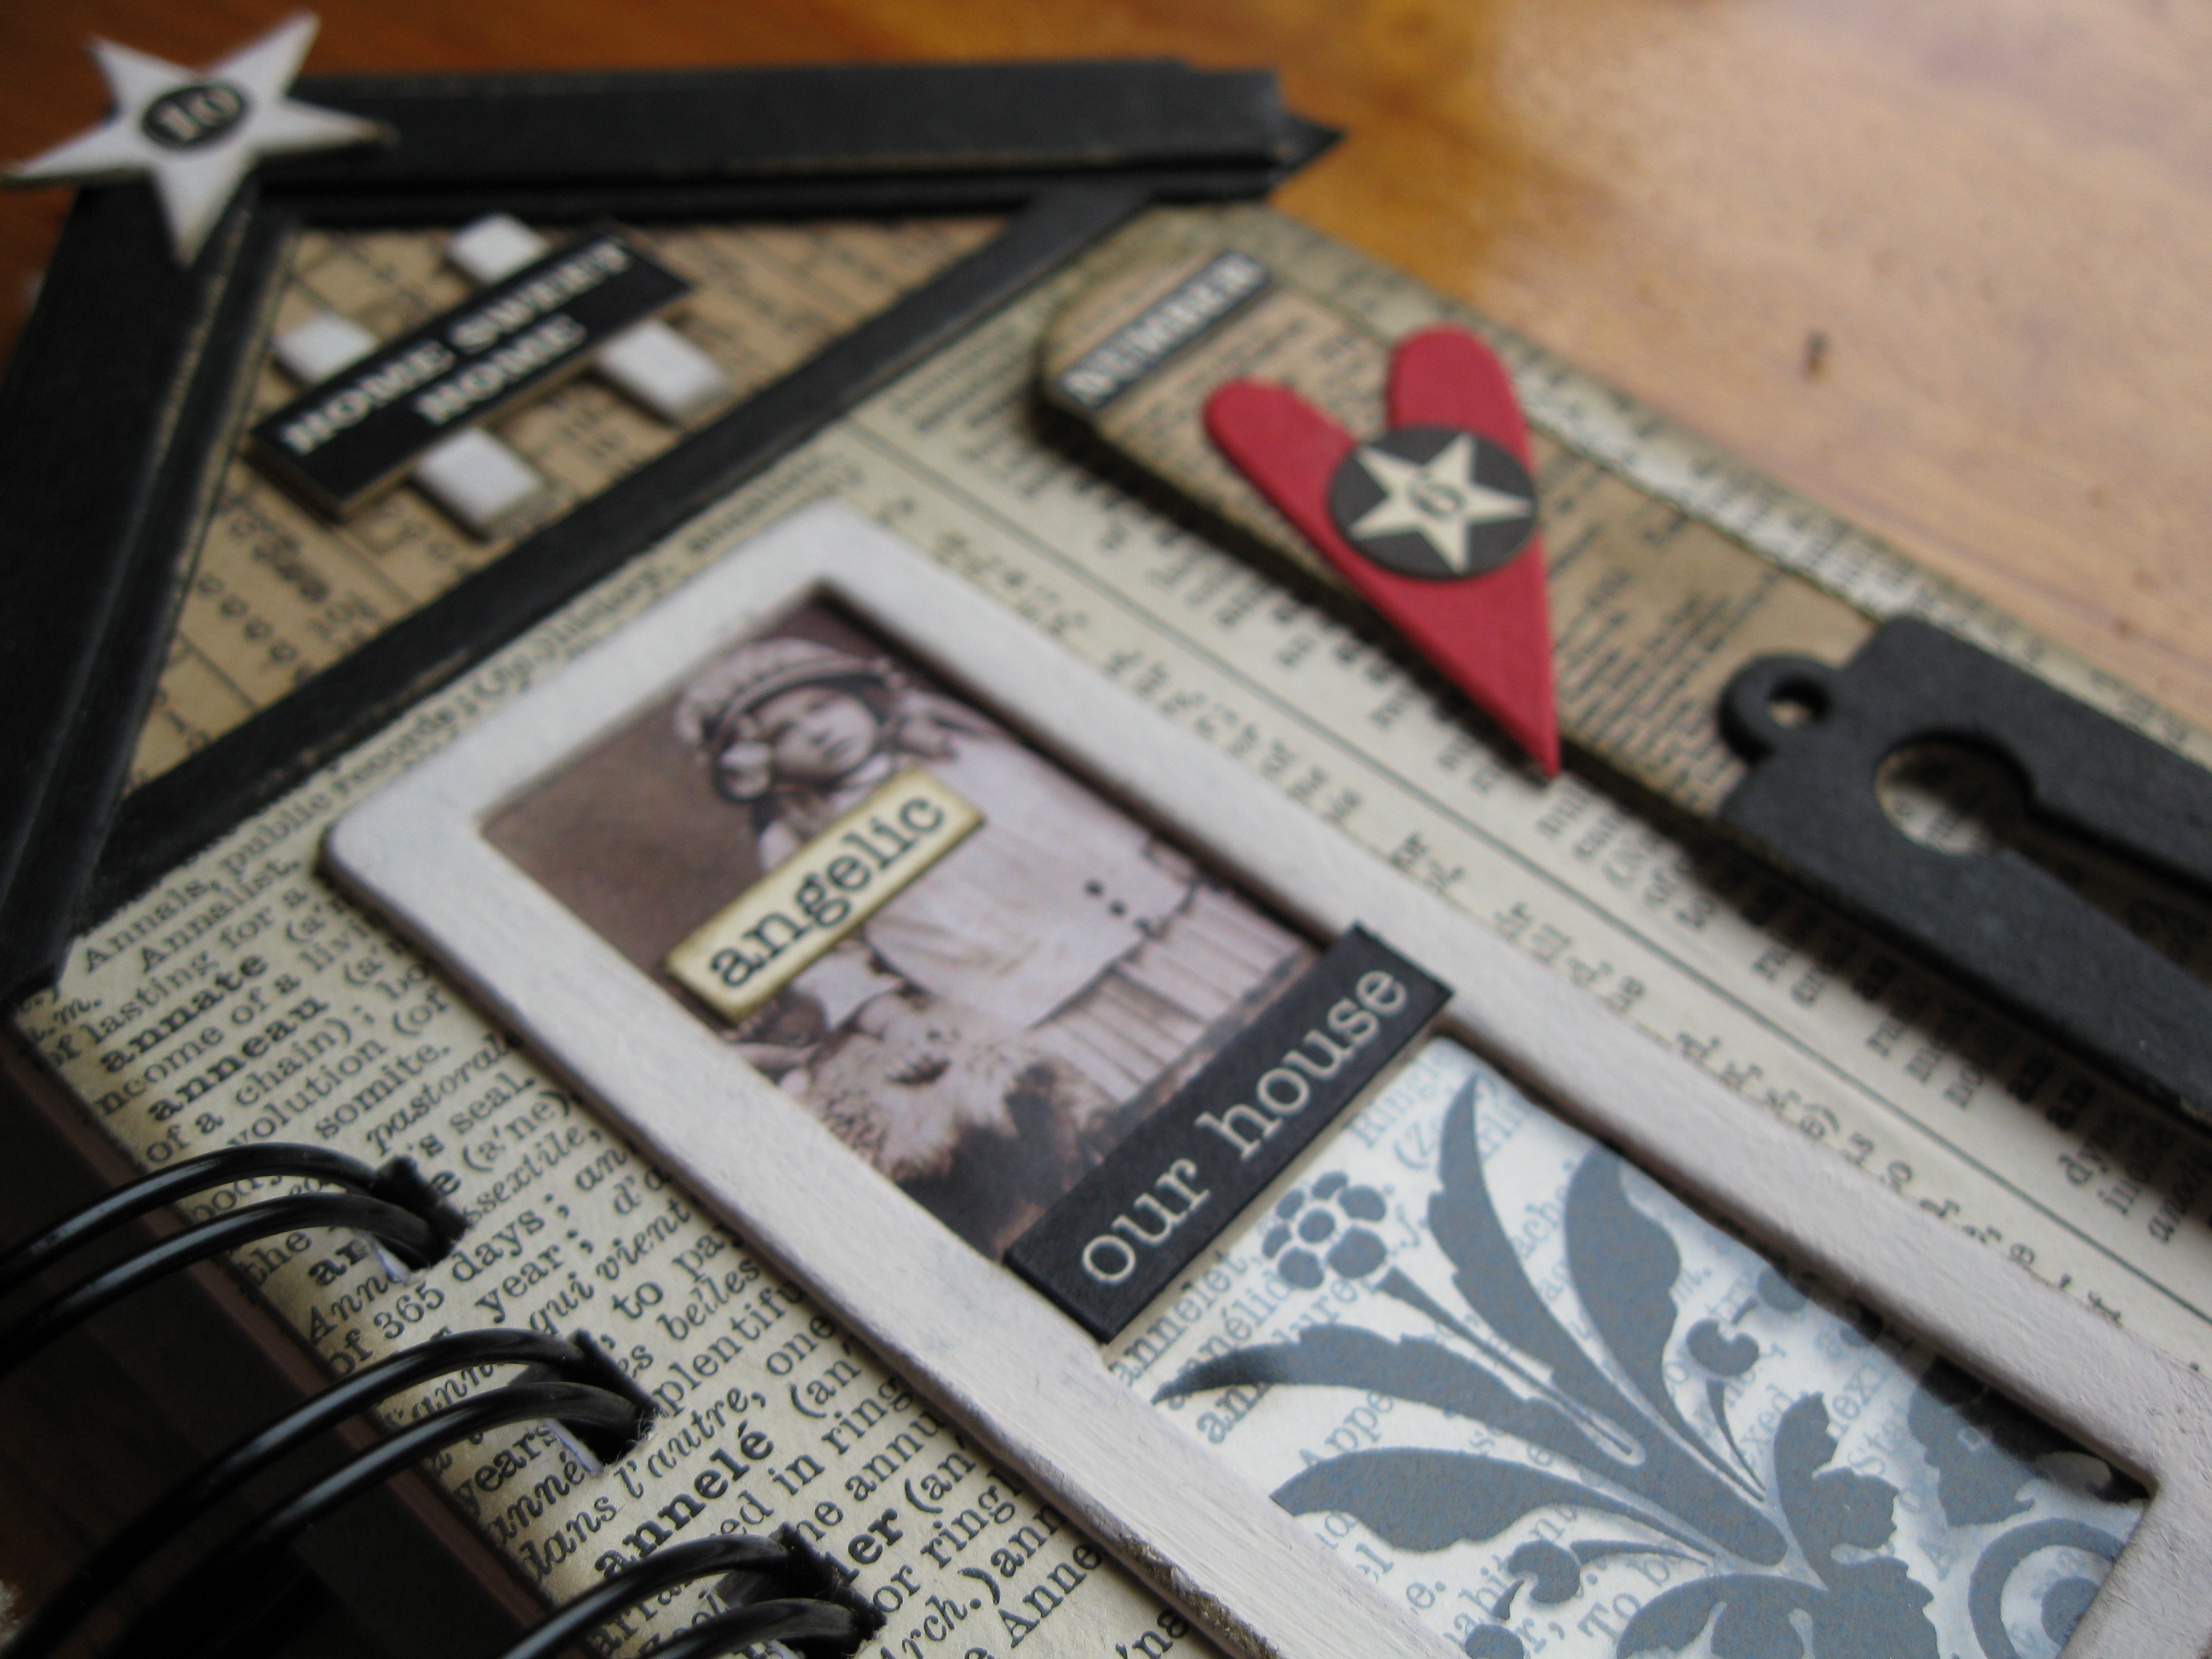 Chipboard elements are easy to use in your mixed media collages and assemblage